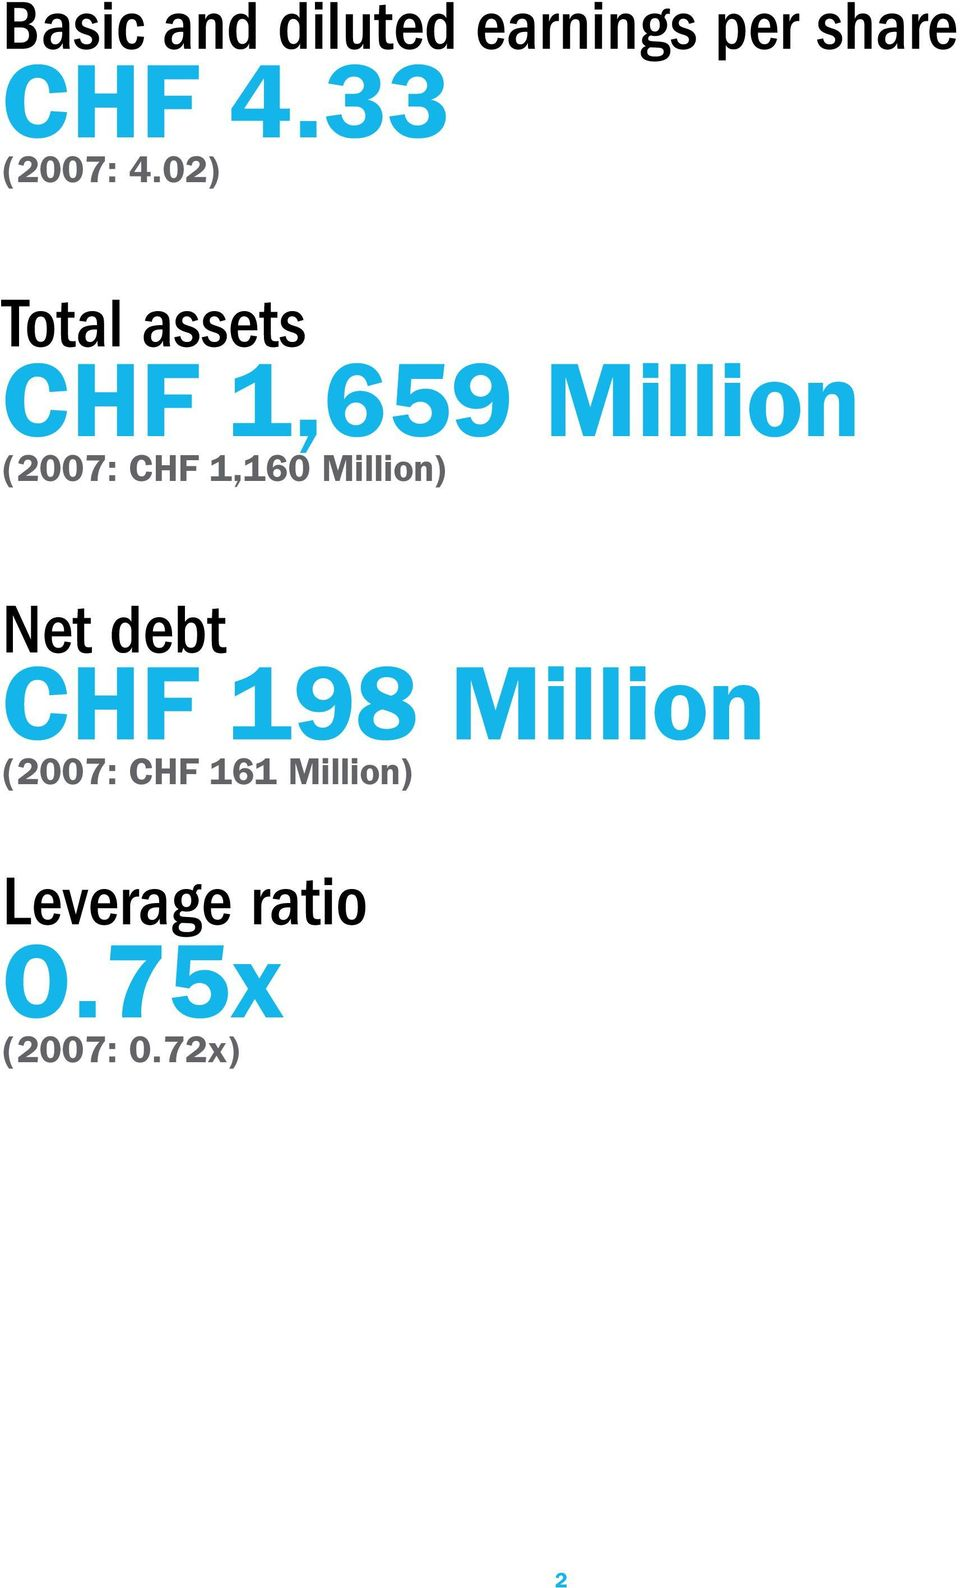 02) Total assets CHF 1,659 Million (2007: CHF